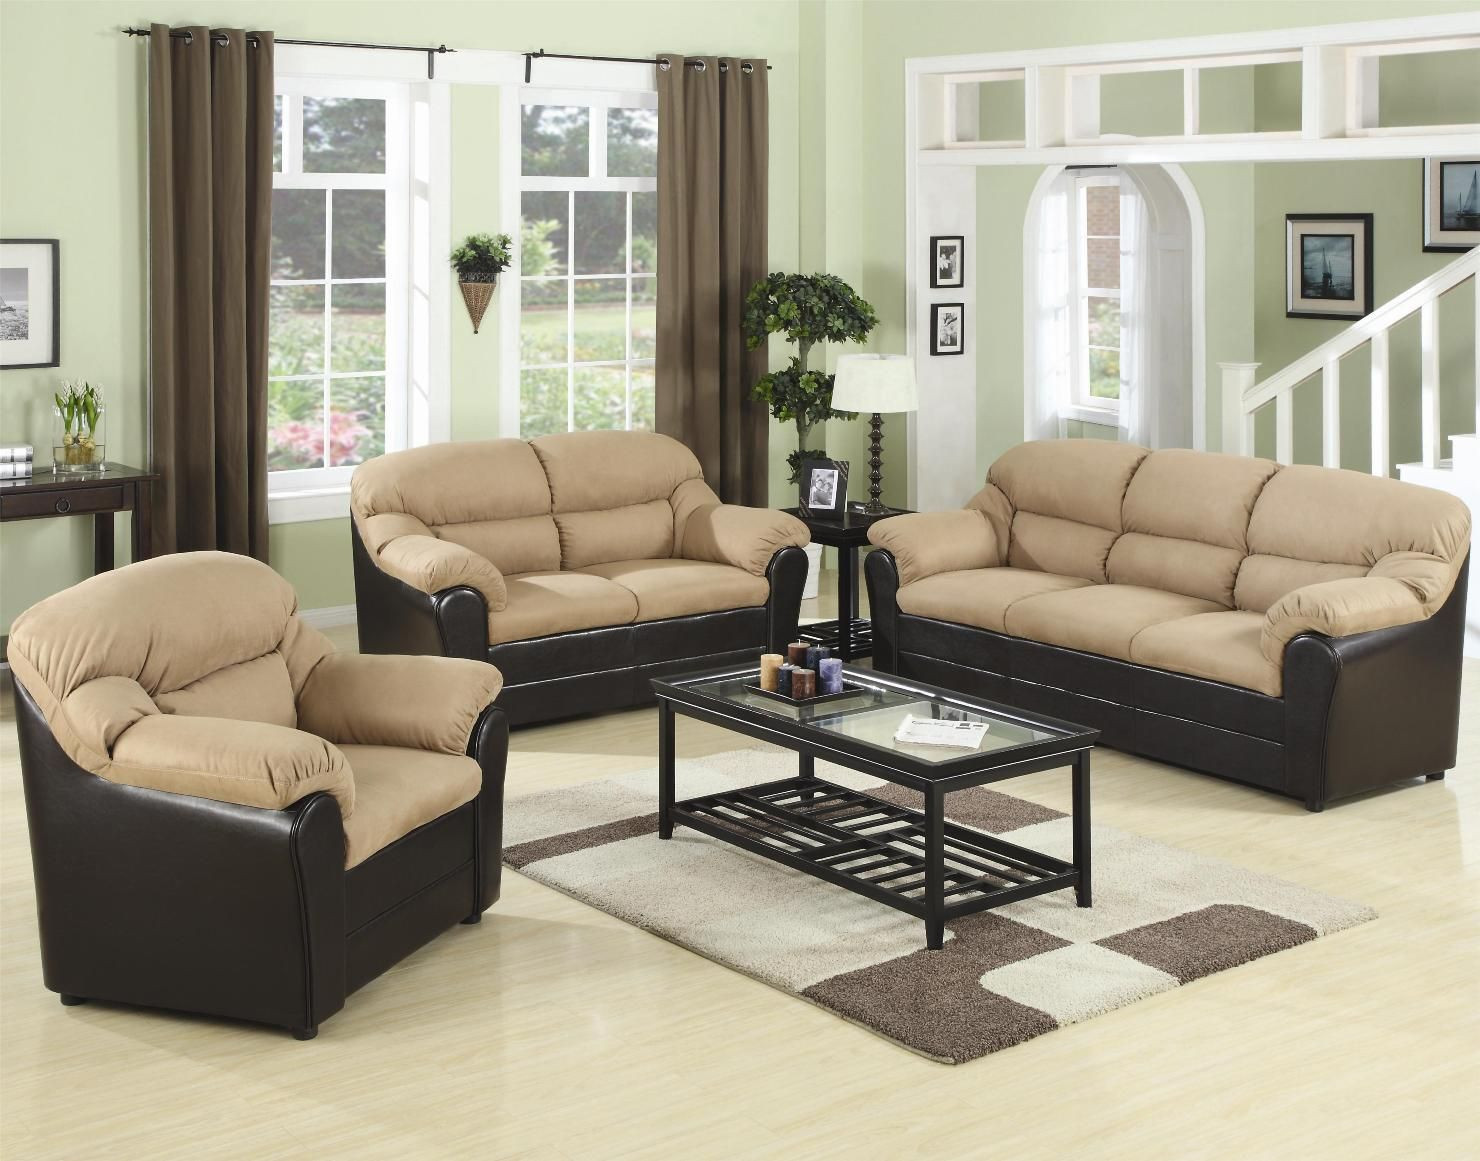 Modern Living Room Sets Cheap  Leather sofa outlets for unique and charming designs at